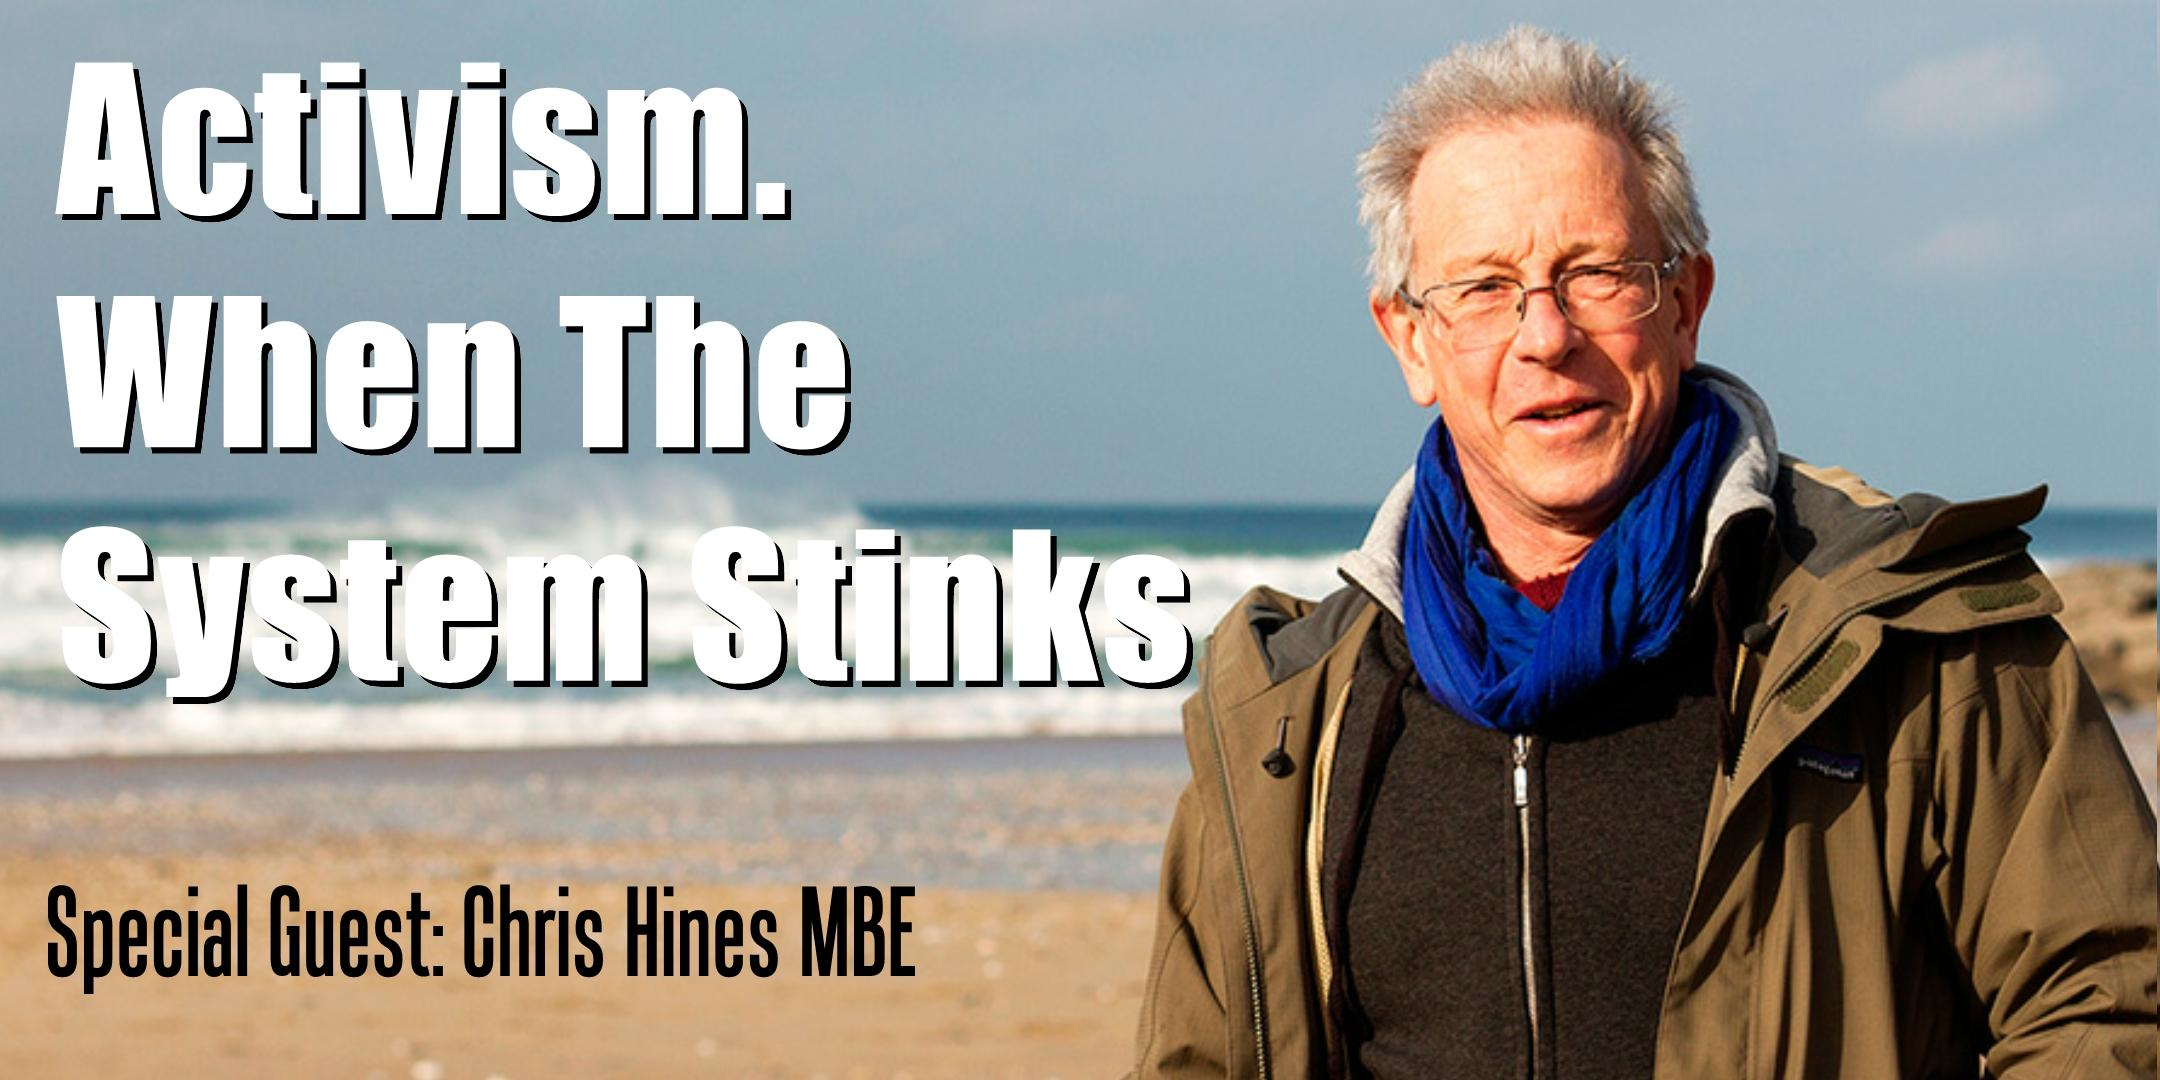 Activism: When The System Stinks. Guest speaker Chris Hines MBE